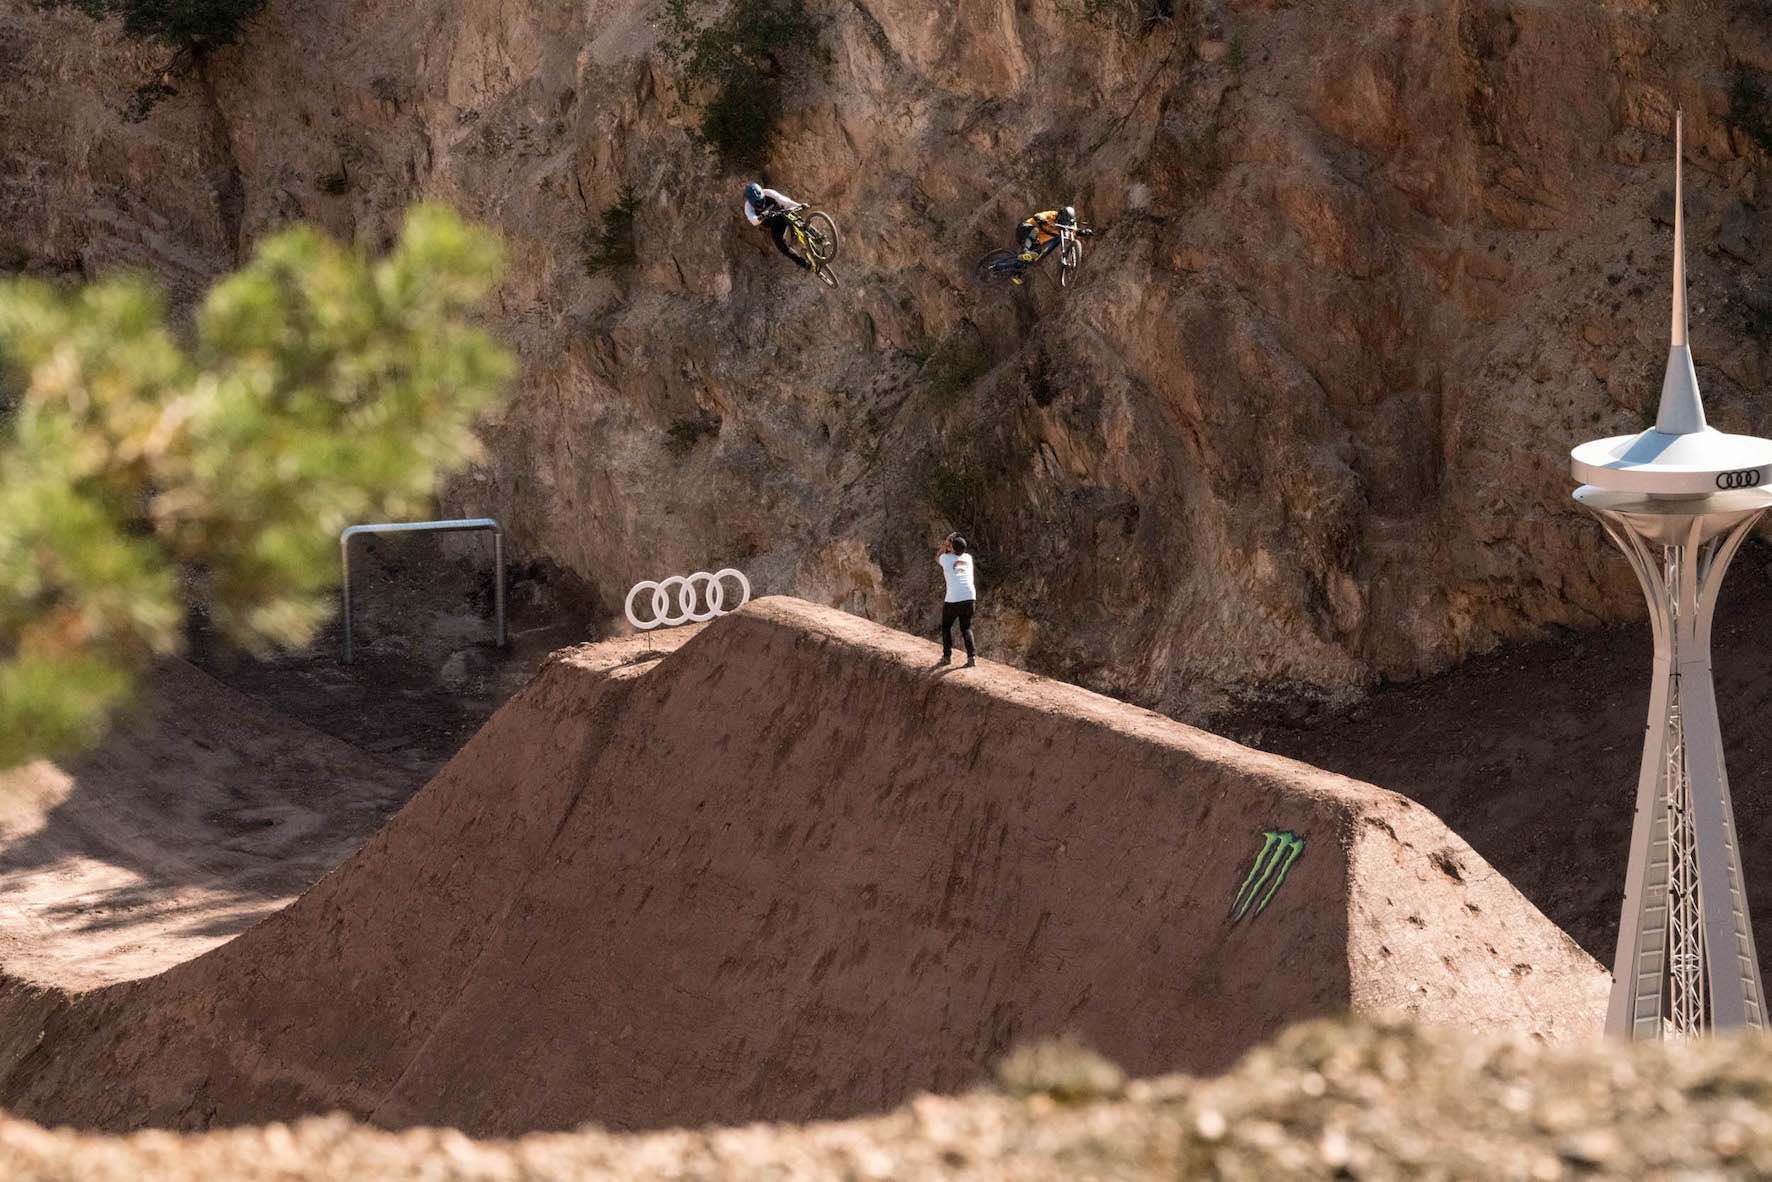 Tom Isted sending at with the other Audi Nines riders